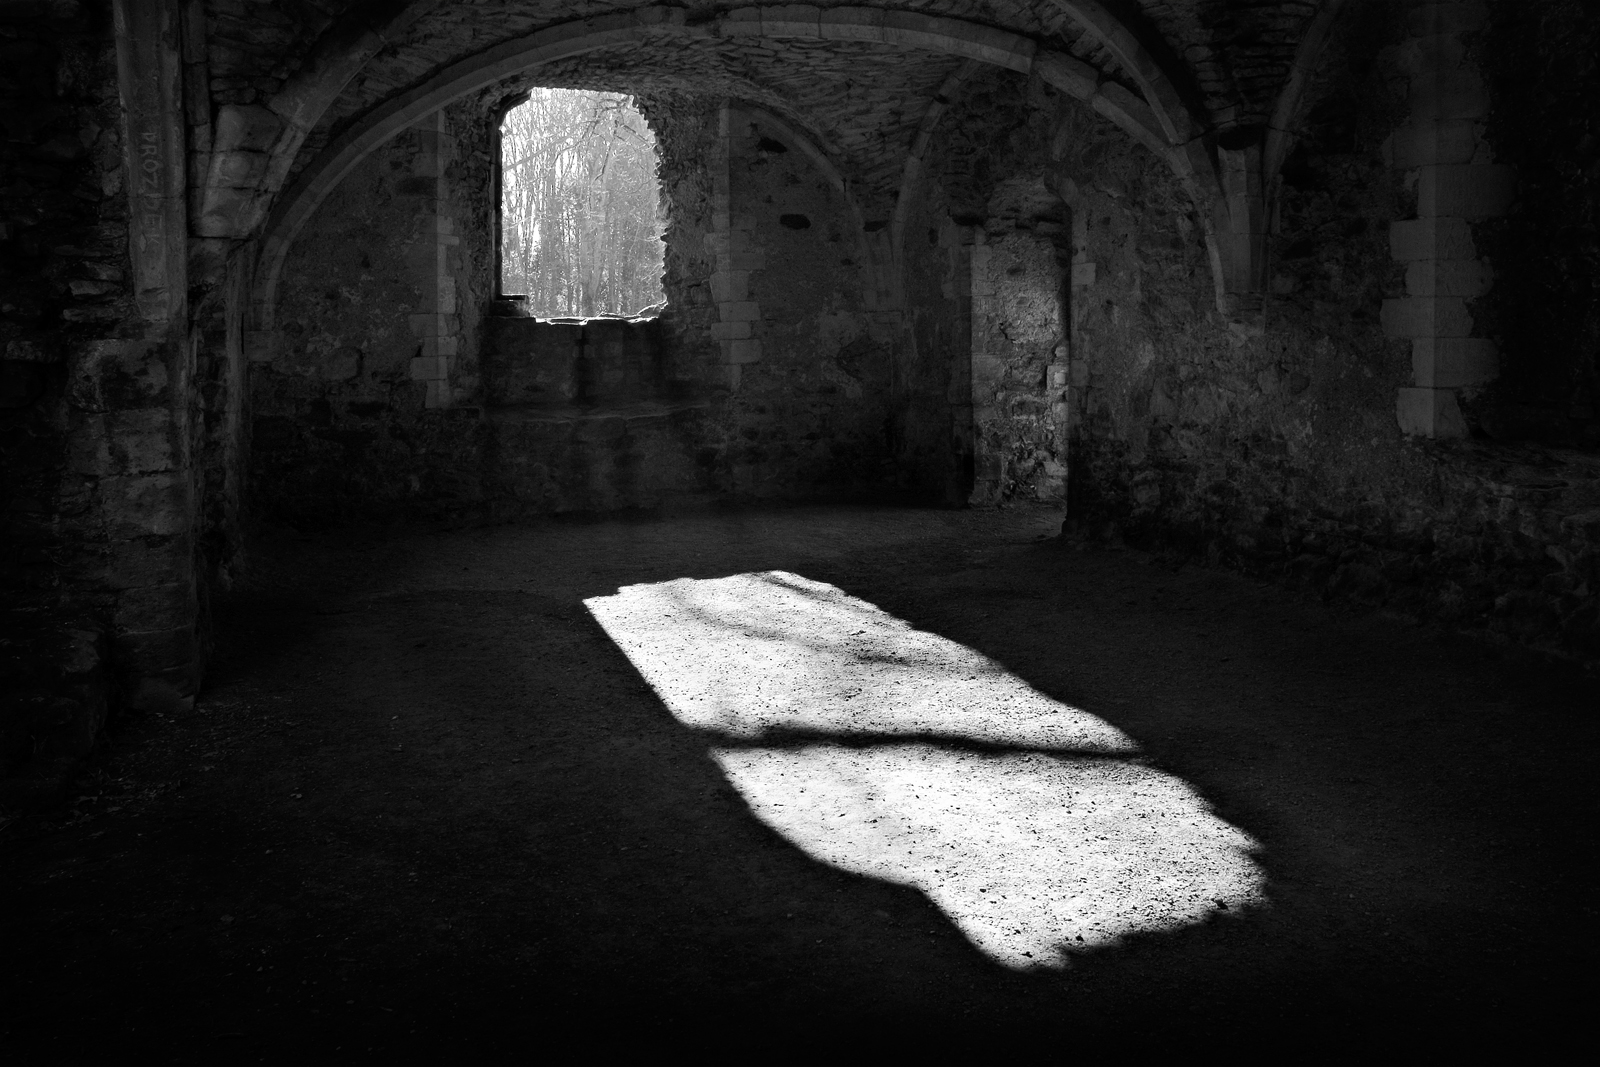 First Light (Netley Abbey)